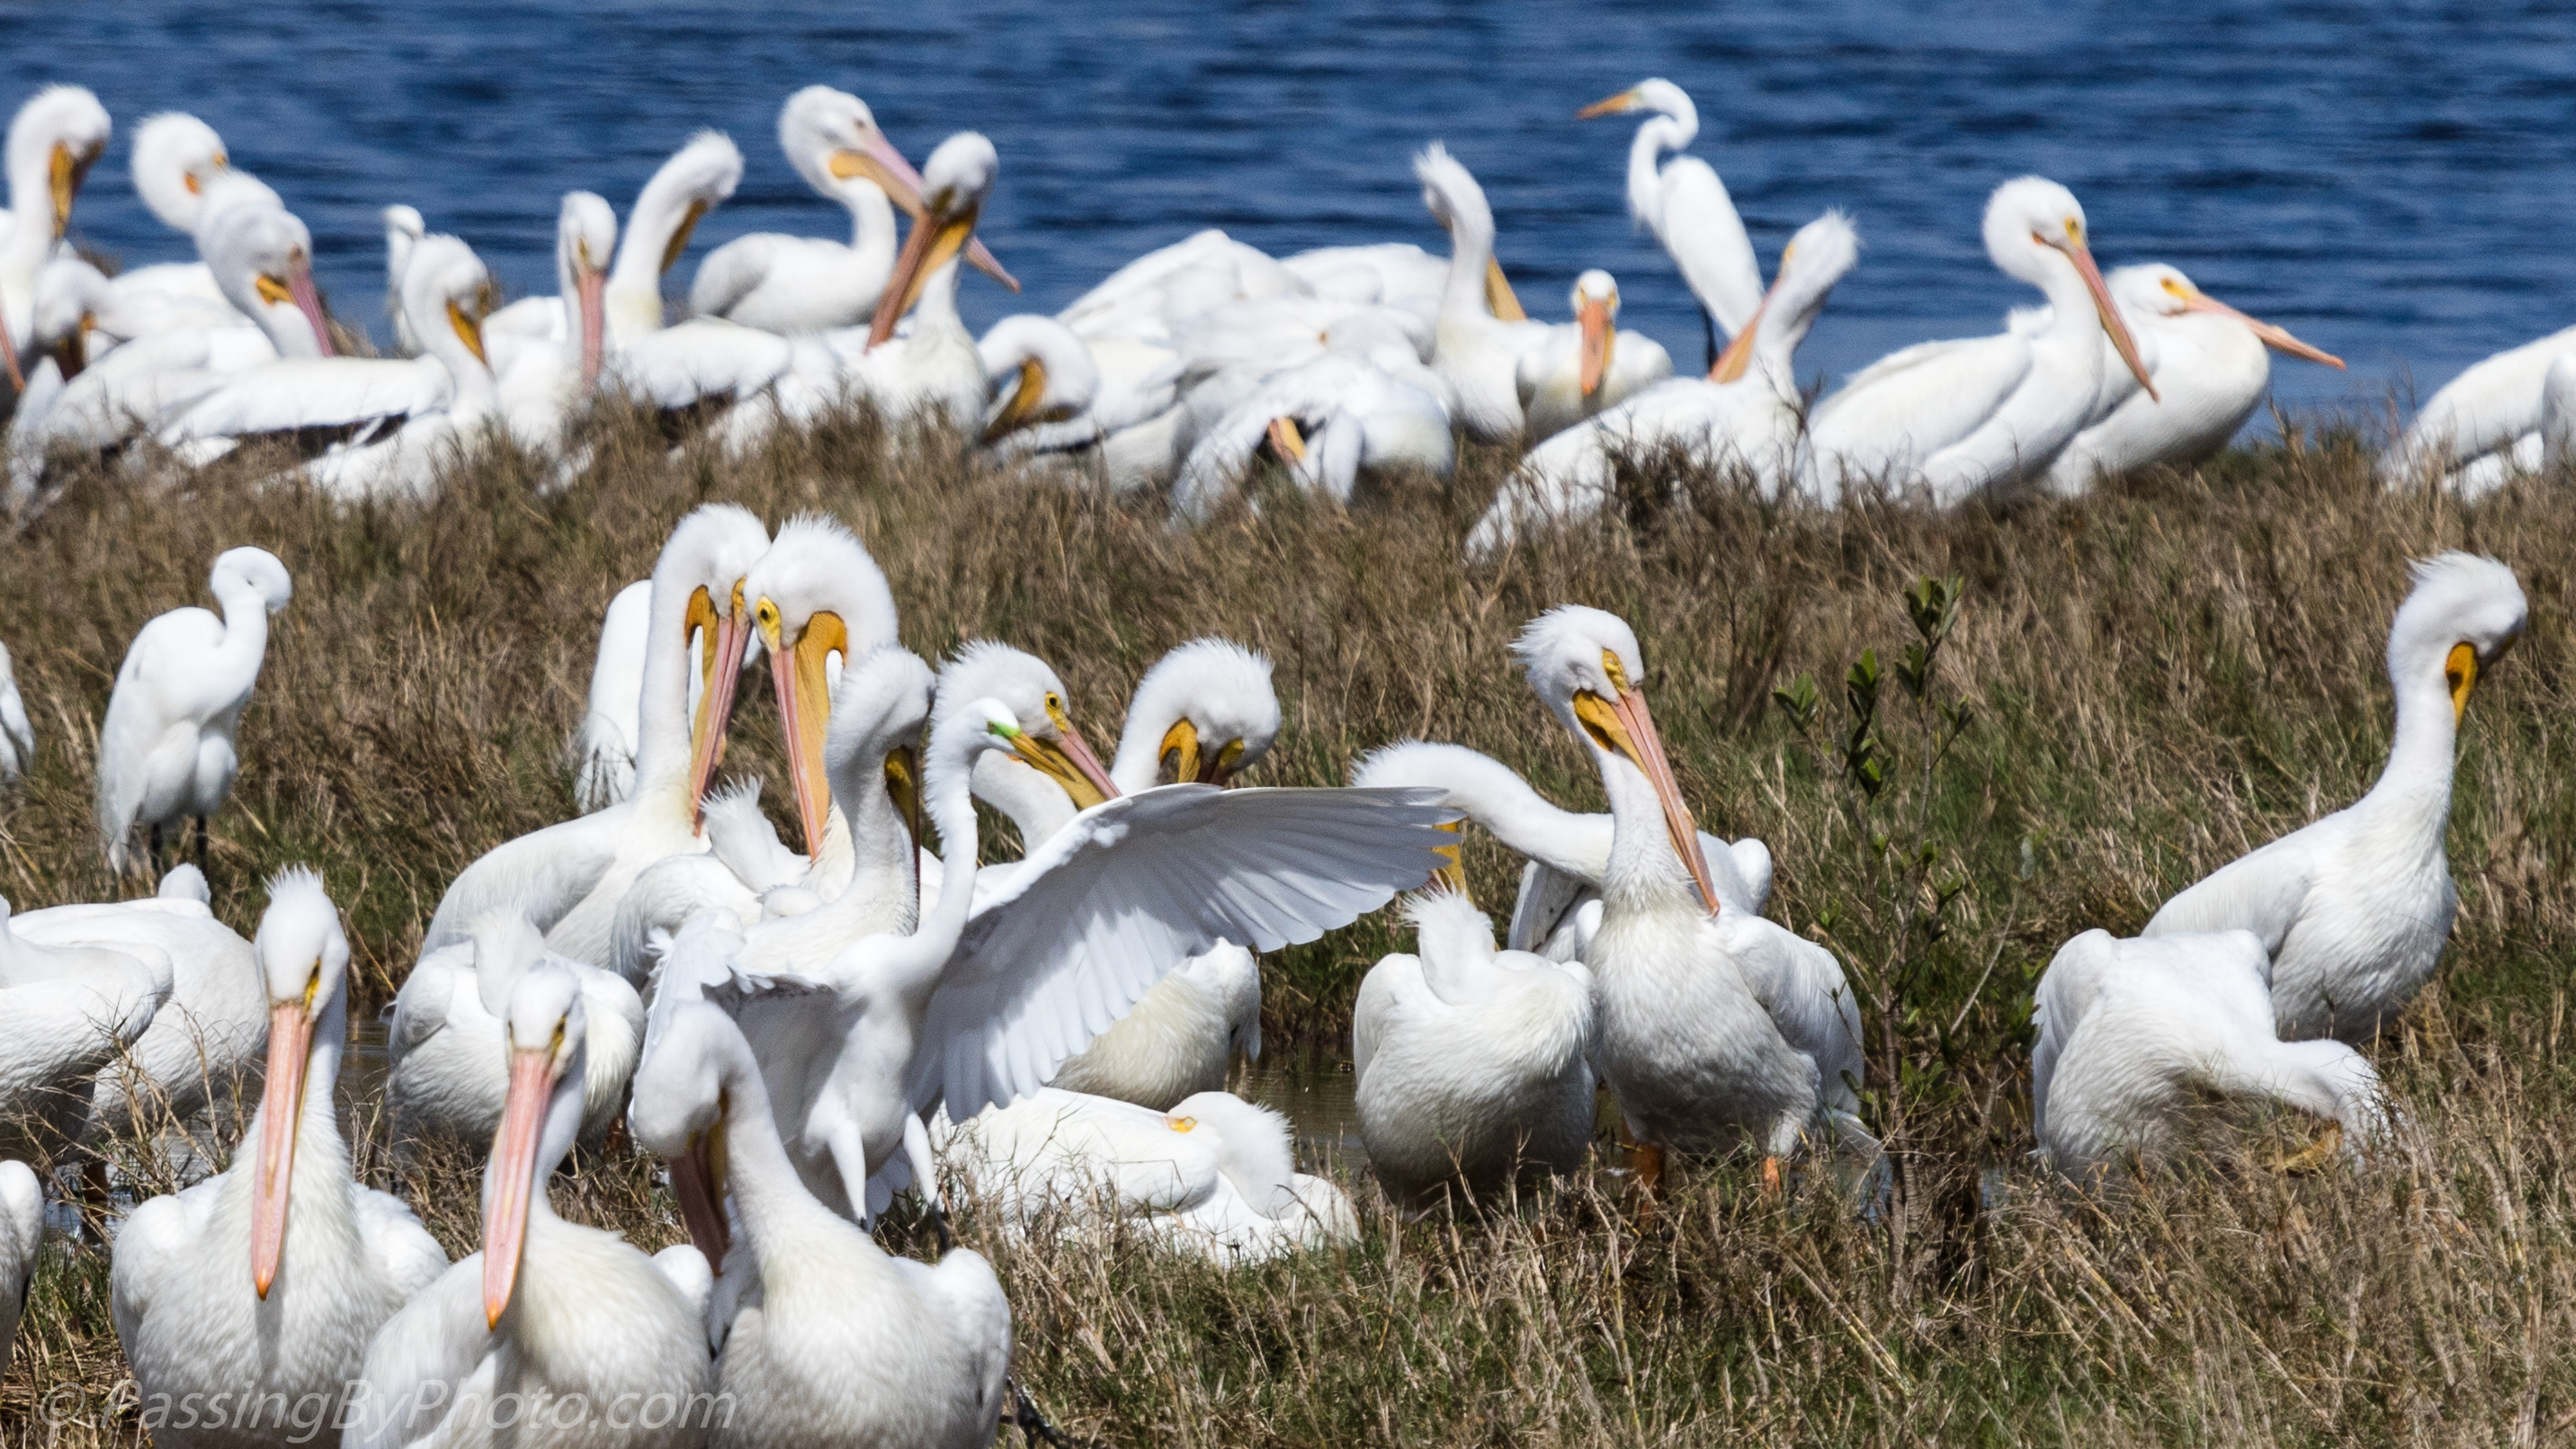 Resting American White Pelicans | Passing By Photo